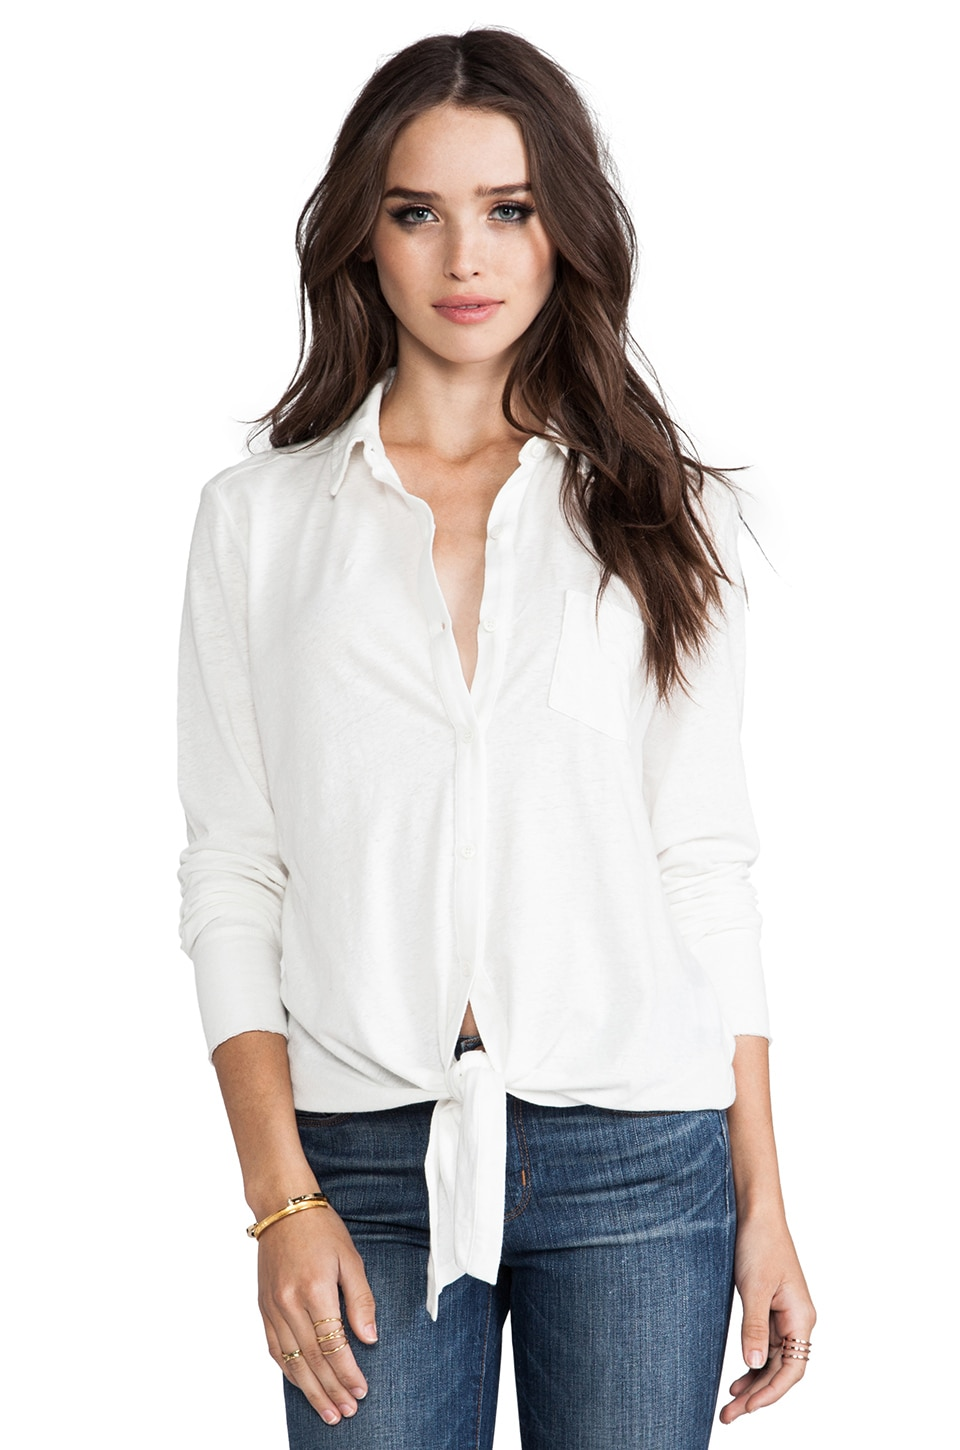 Soft Joie Macyn Front Tie Top in Porcelain